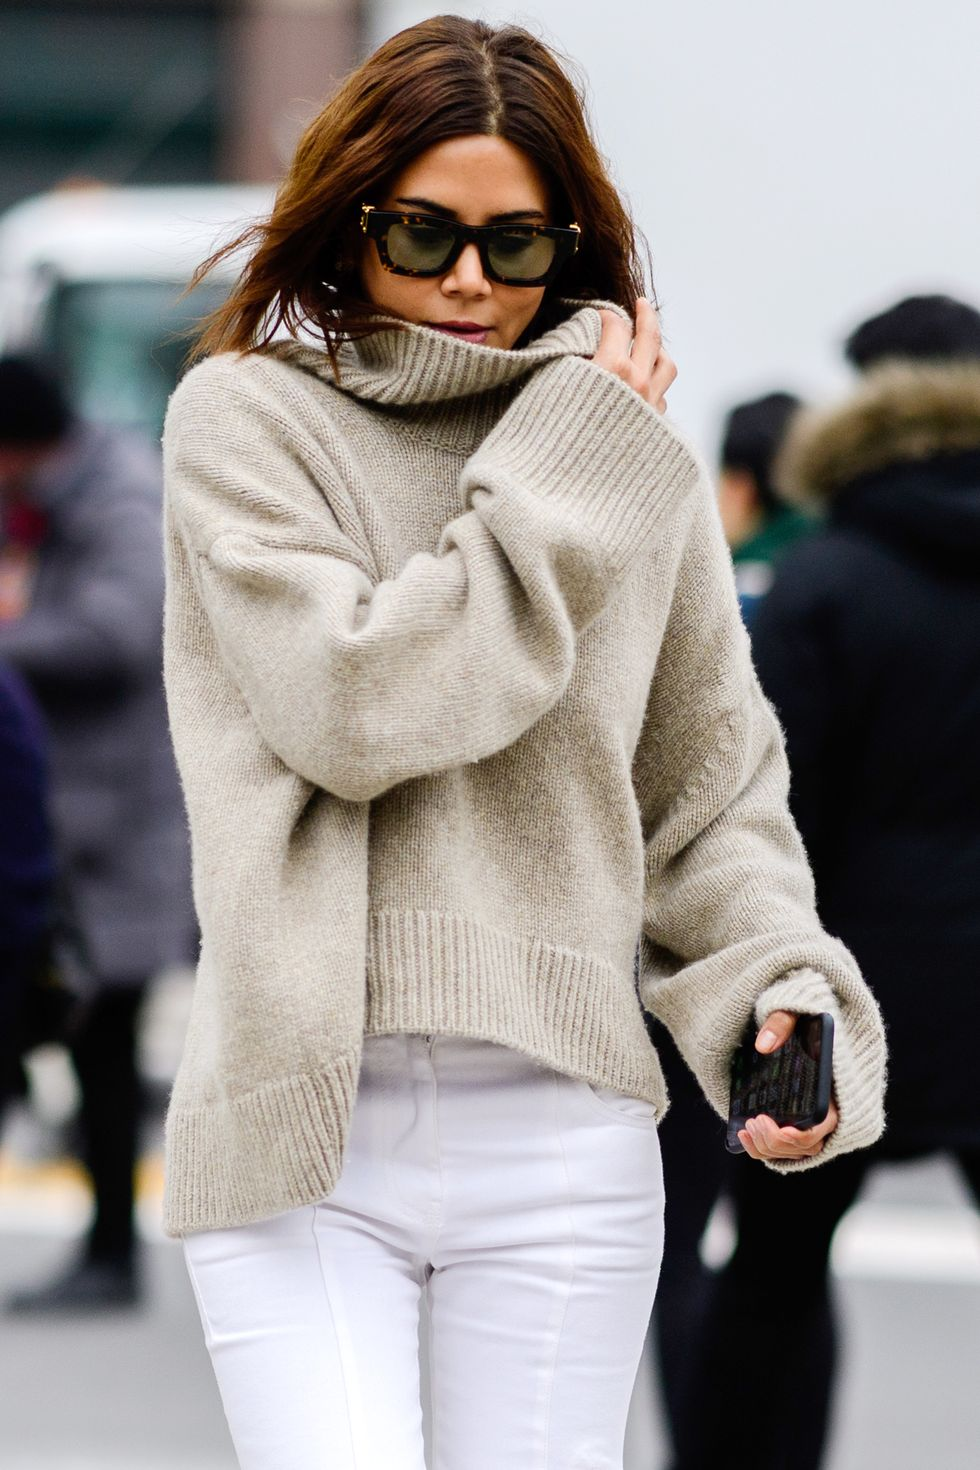 Fall and Winter Outfit Combo: Neutral Turtleneck and White Jeans — Christine Centenera Street Style